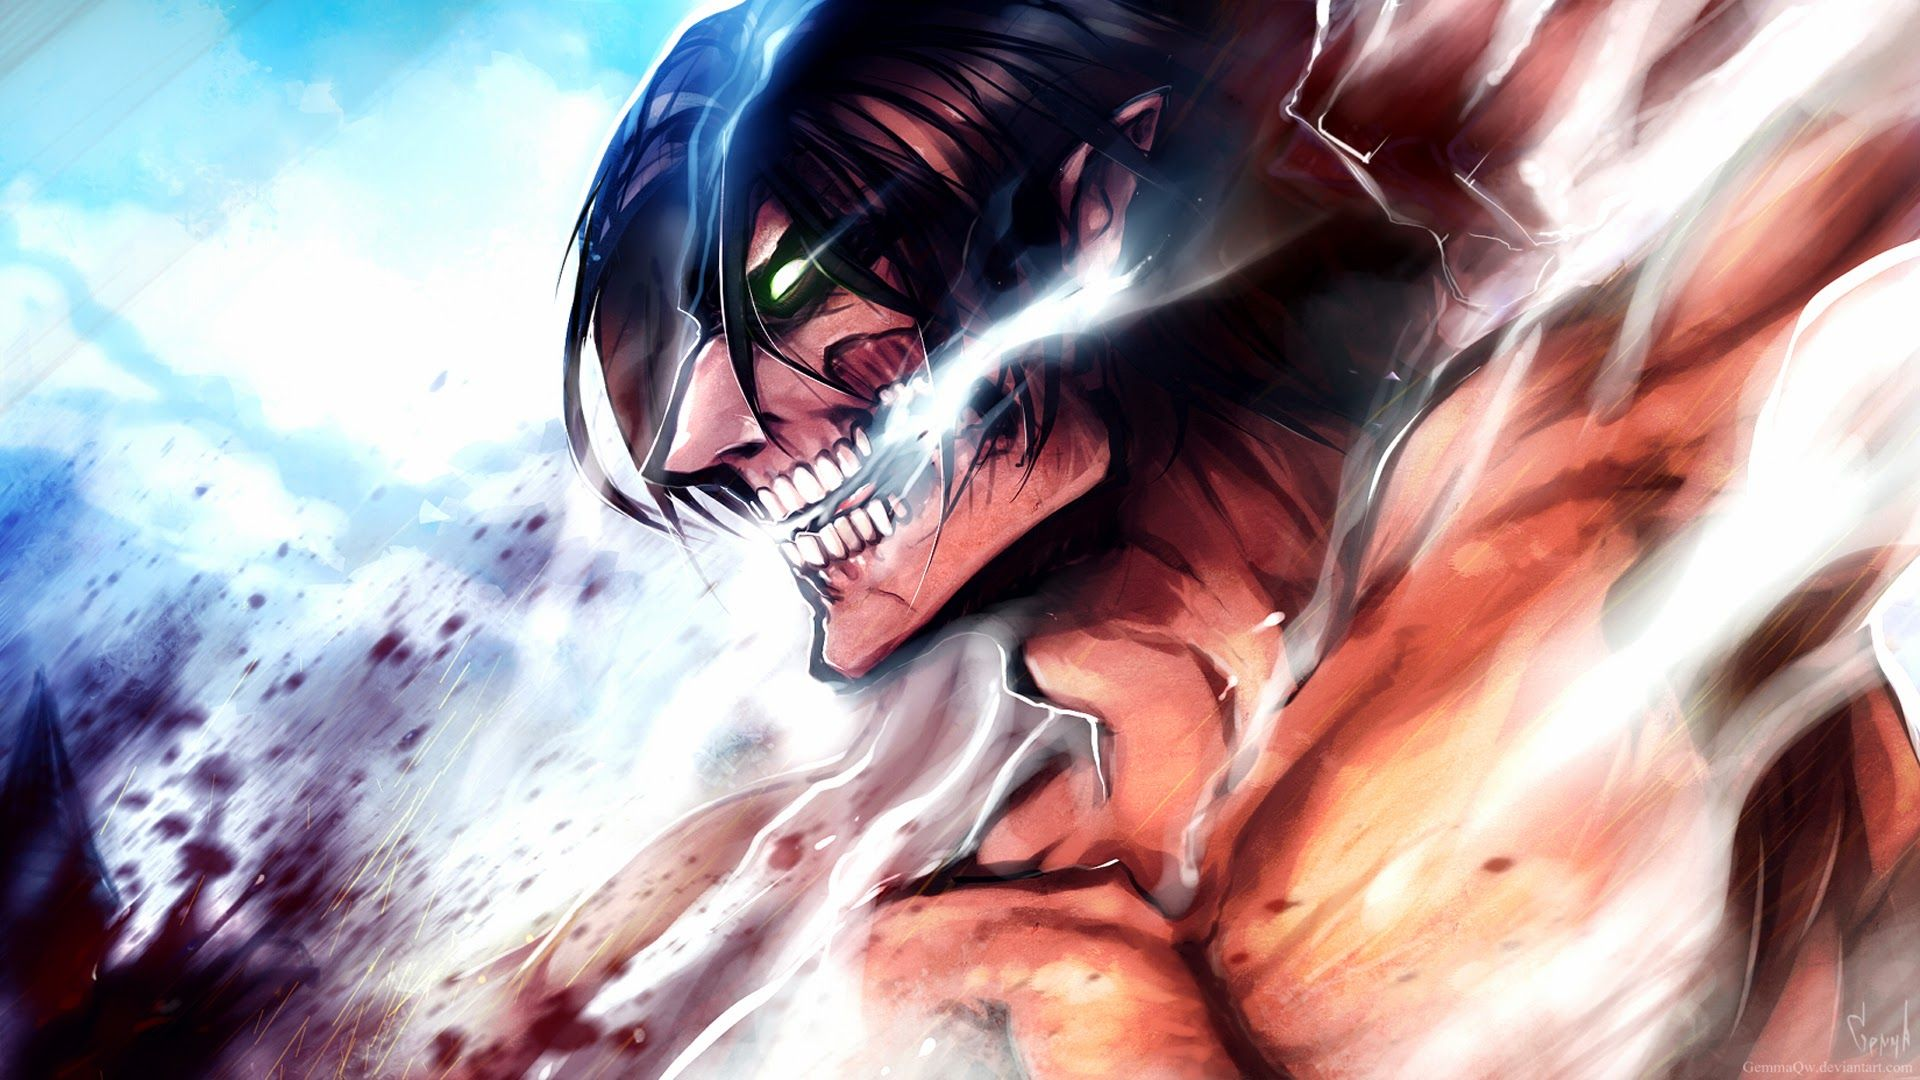 Attack On Titan Titan Eren Wallpapers Top Free Attack On Titan Titan Eren Backgrounds Wallpaperaccess